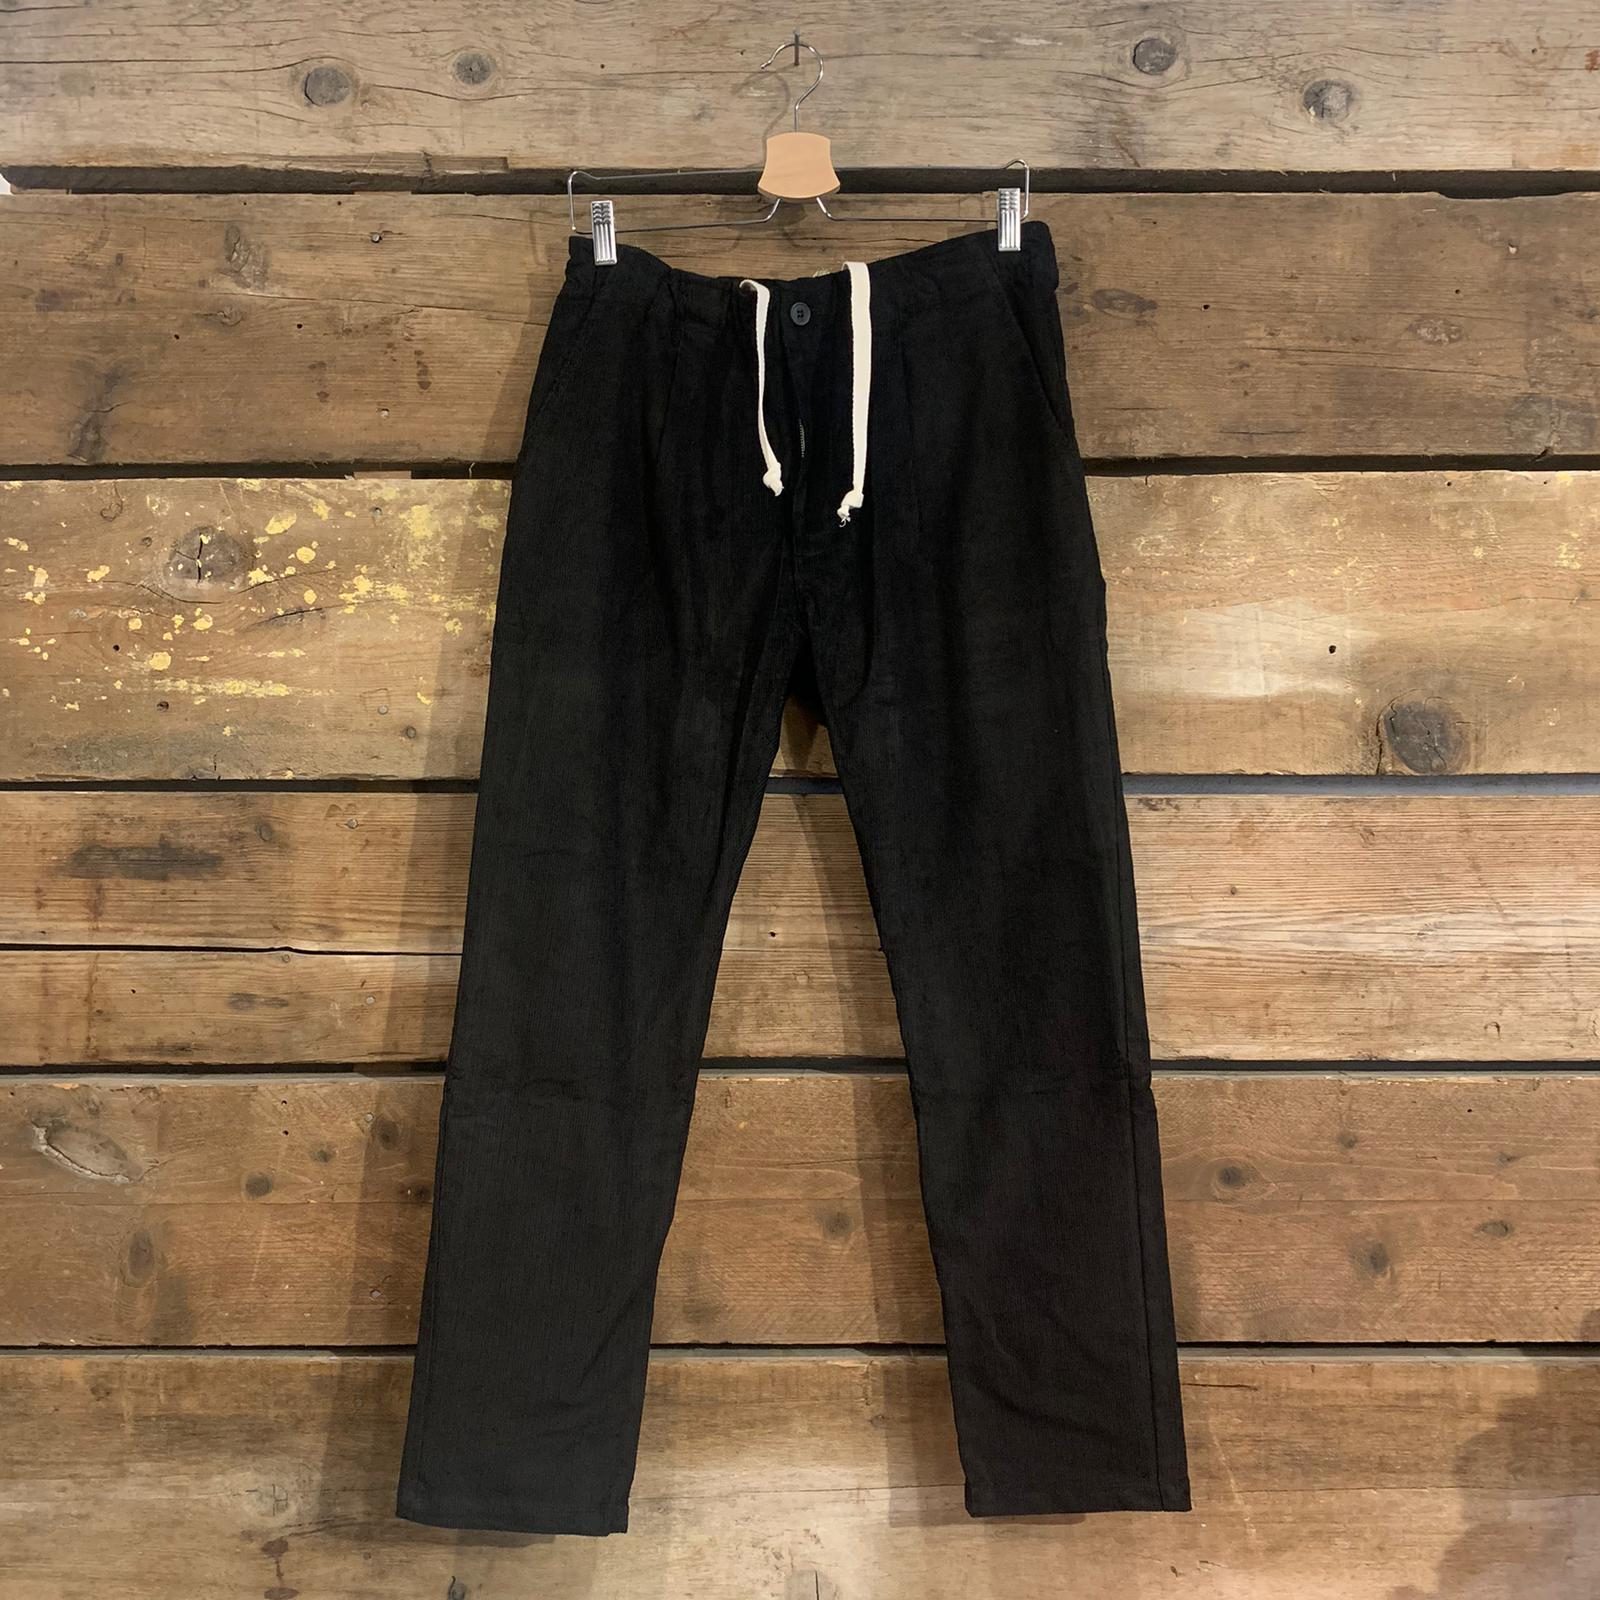 Pantalone Uomo Bakery Lowan In Velluto A Costine Nero Con Pence, Bottone e Coulisse